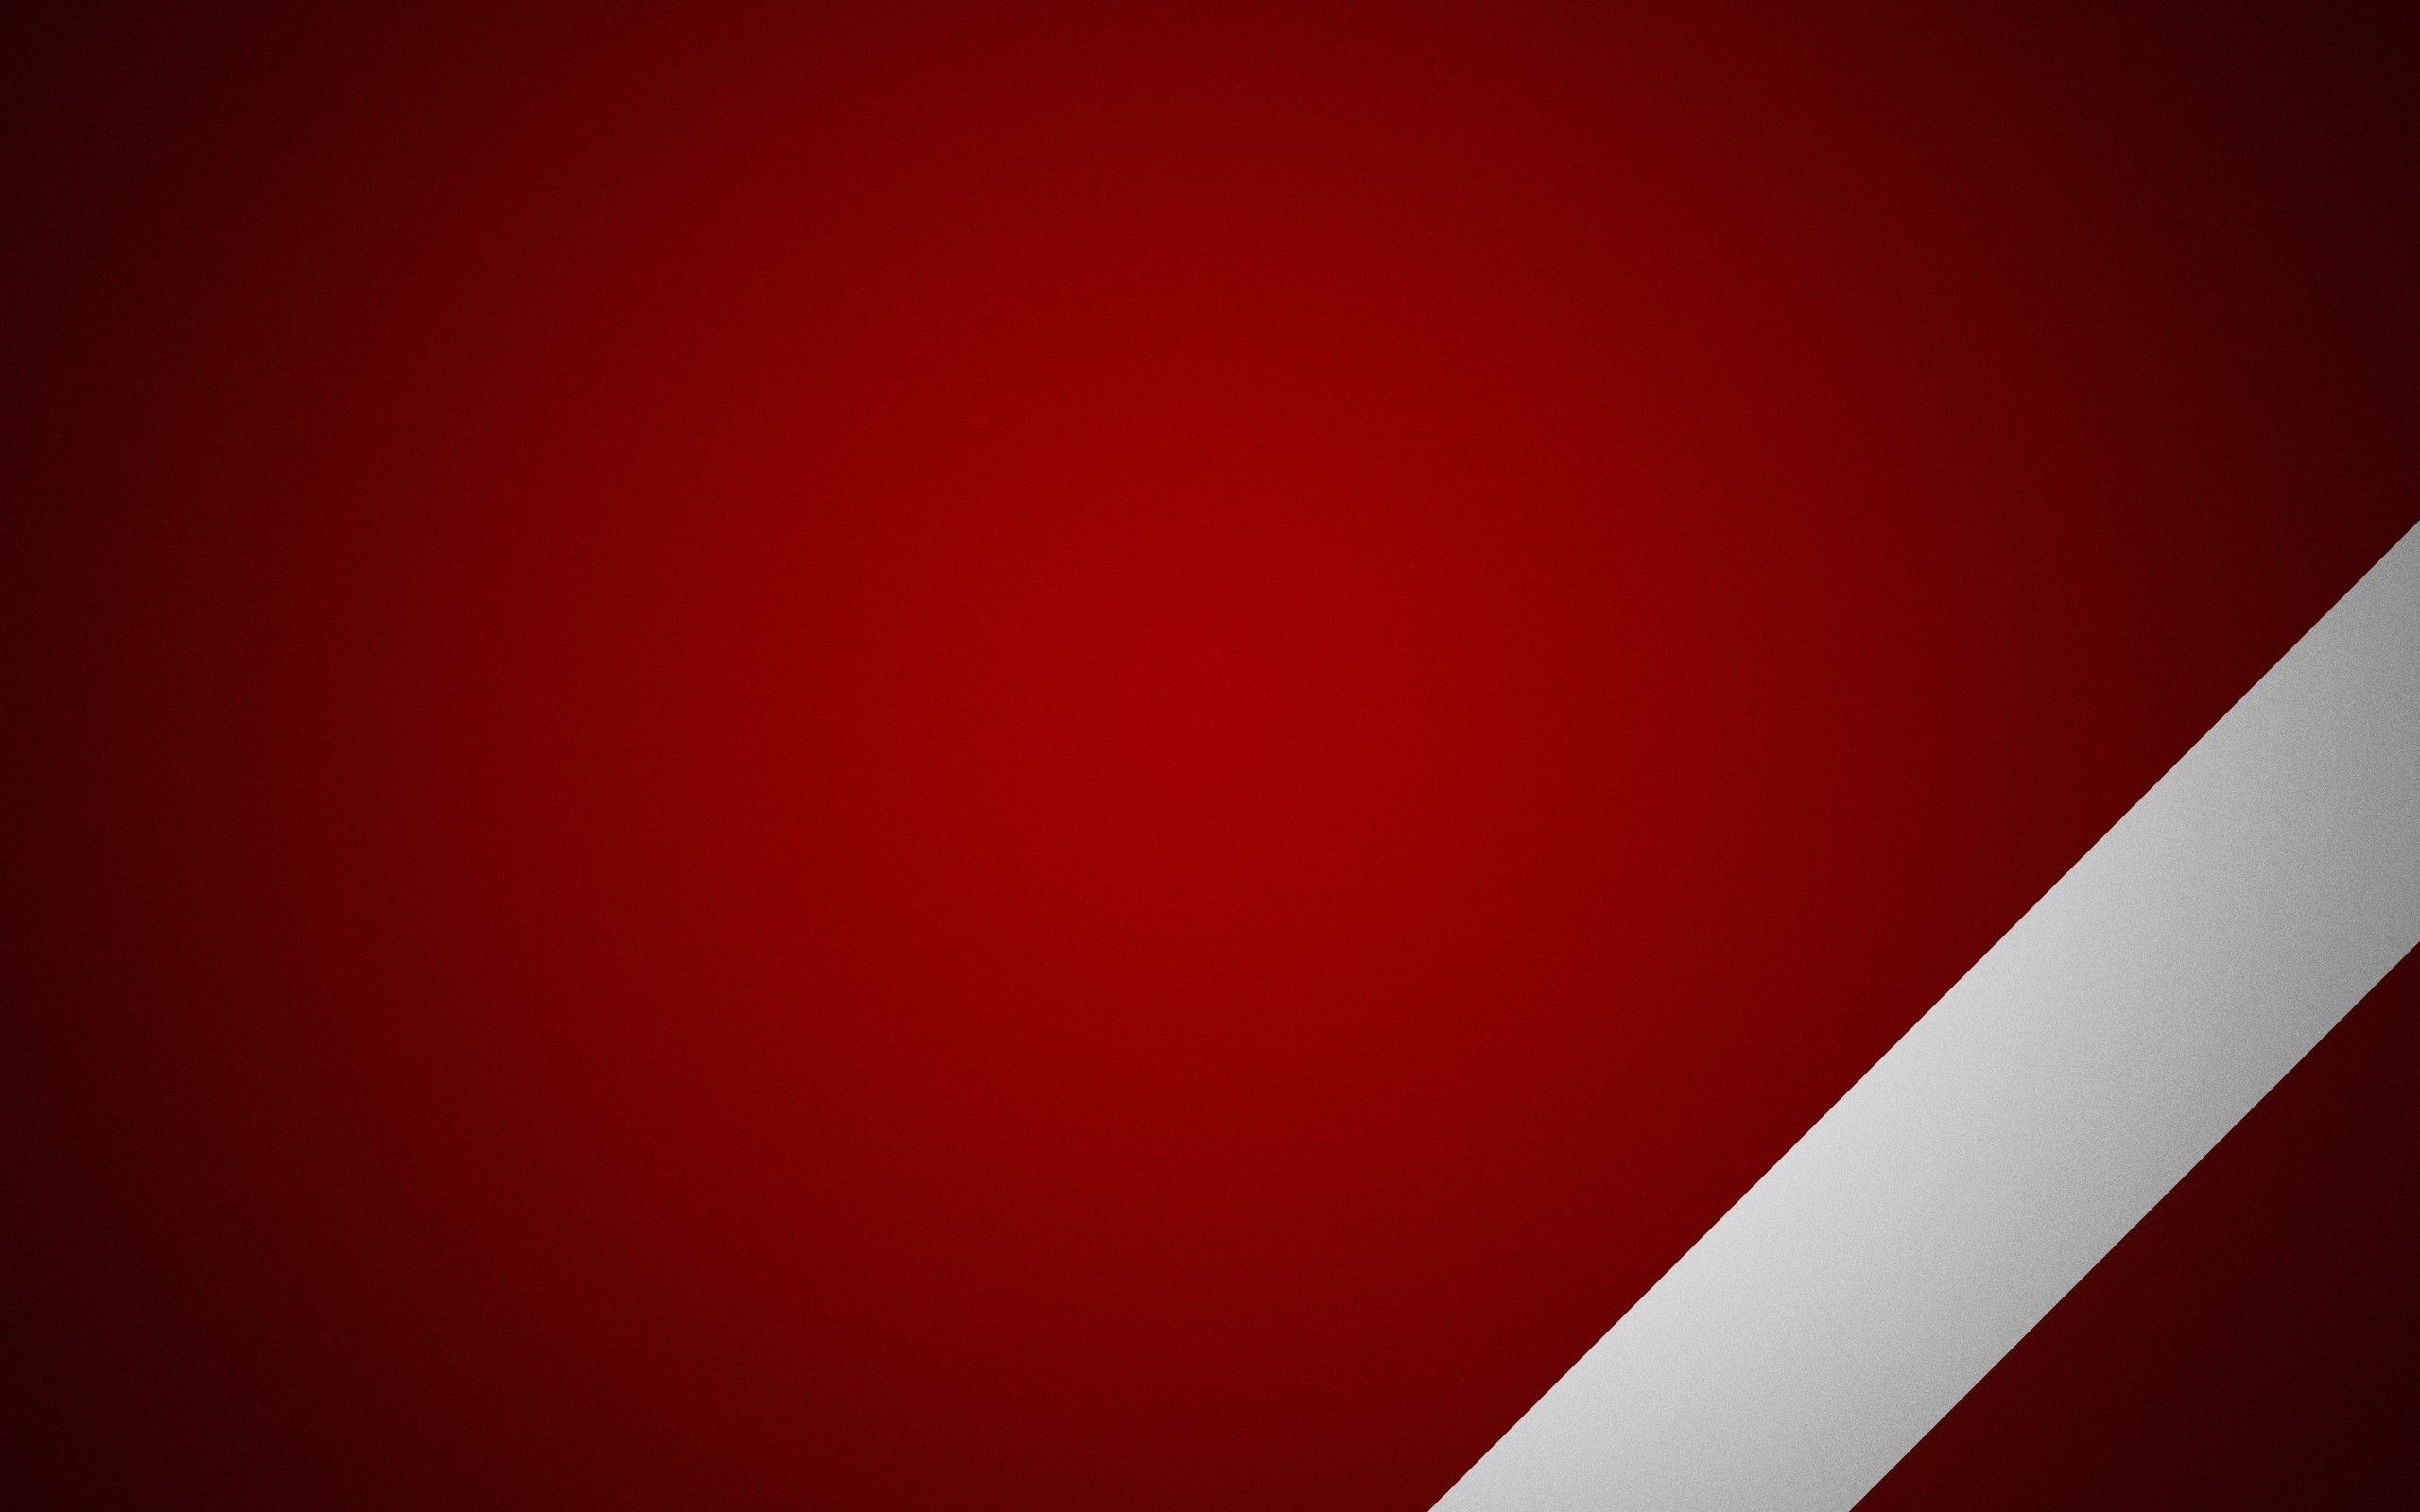 red white and blue background 183�� download free cool high